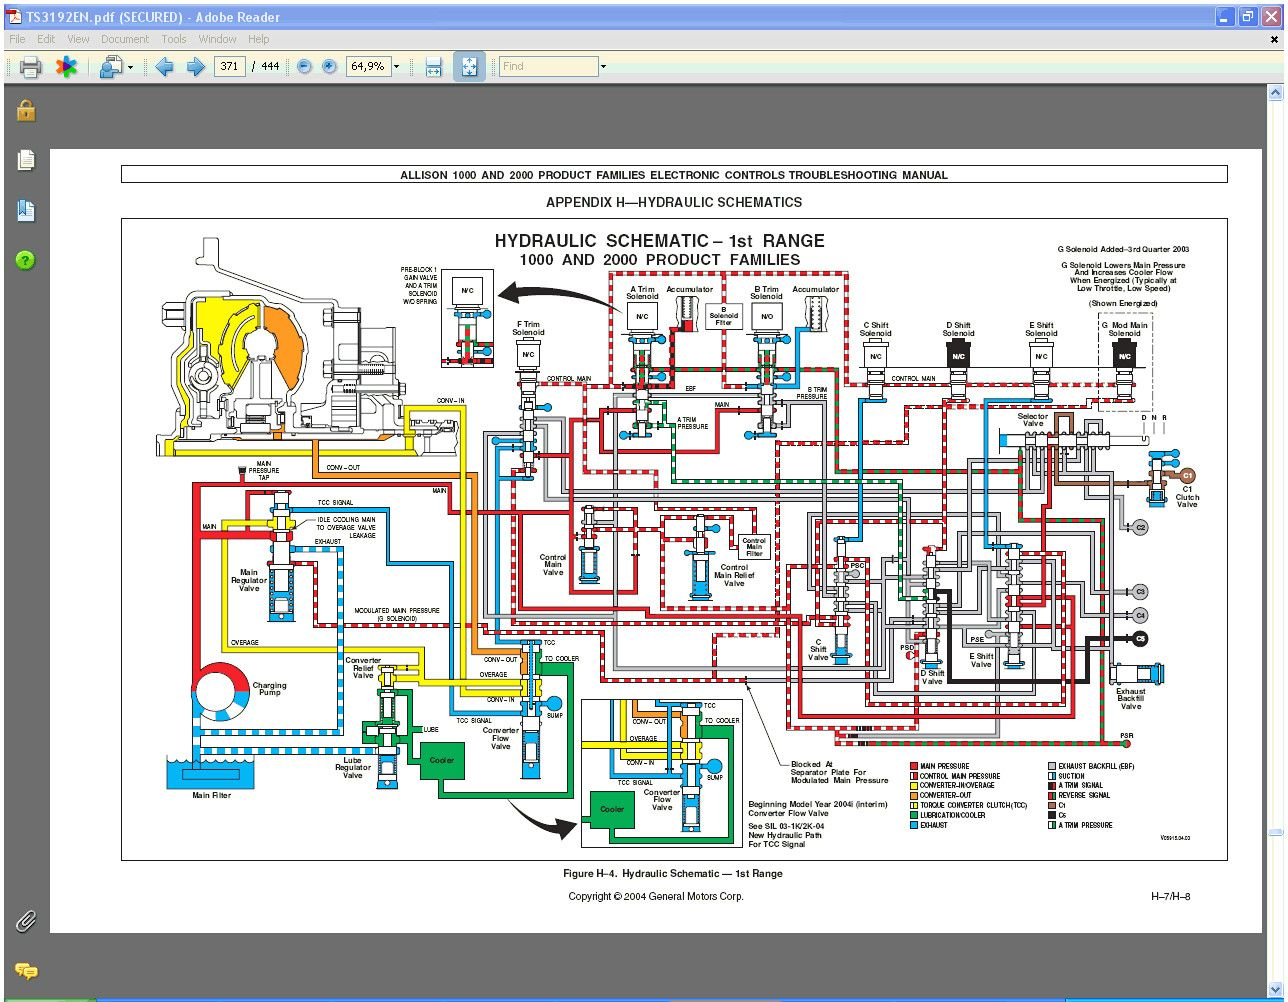 [SCHEMATICS_48IU]  Unique Wiring Diagram For Allison 2400 Transmission 2000 Endearing Inside |  Motorcycle wiring, Diagram, Transmission | Allison Wiring Diagram |  | Pinterest